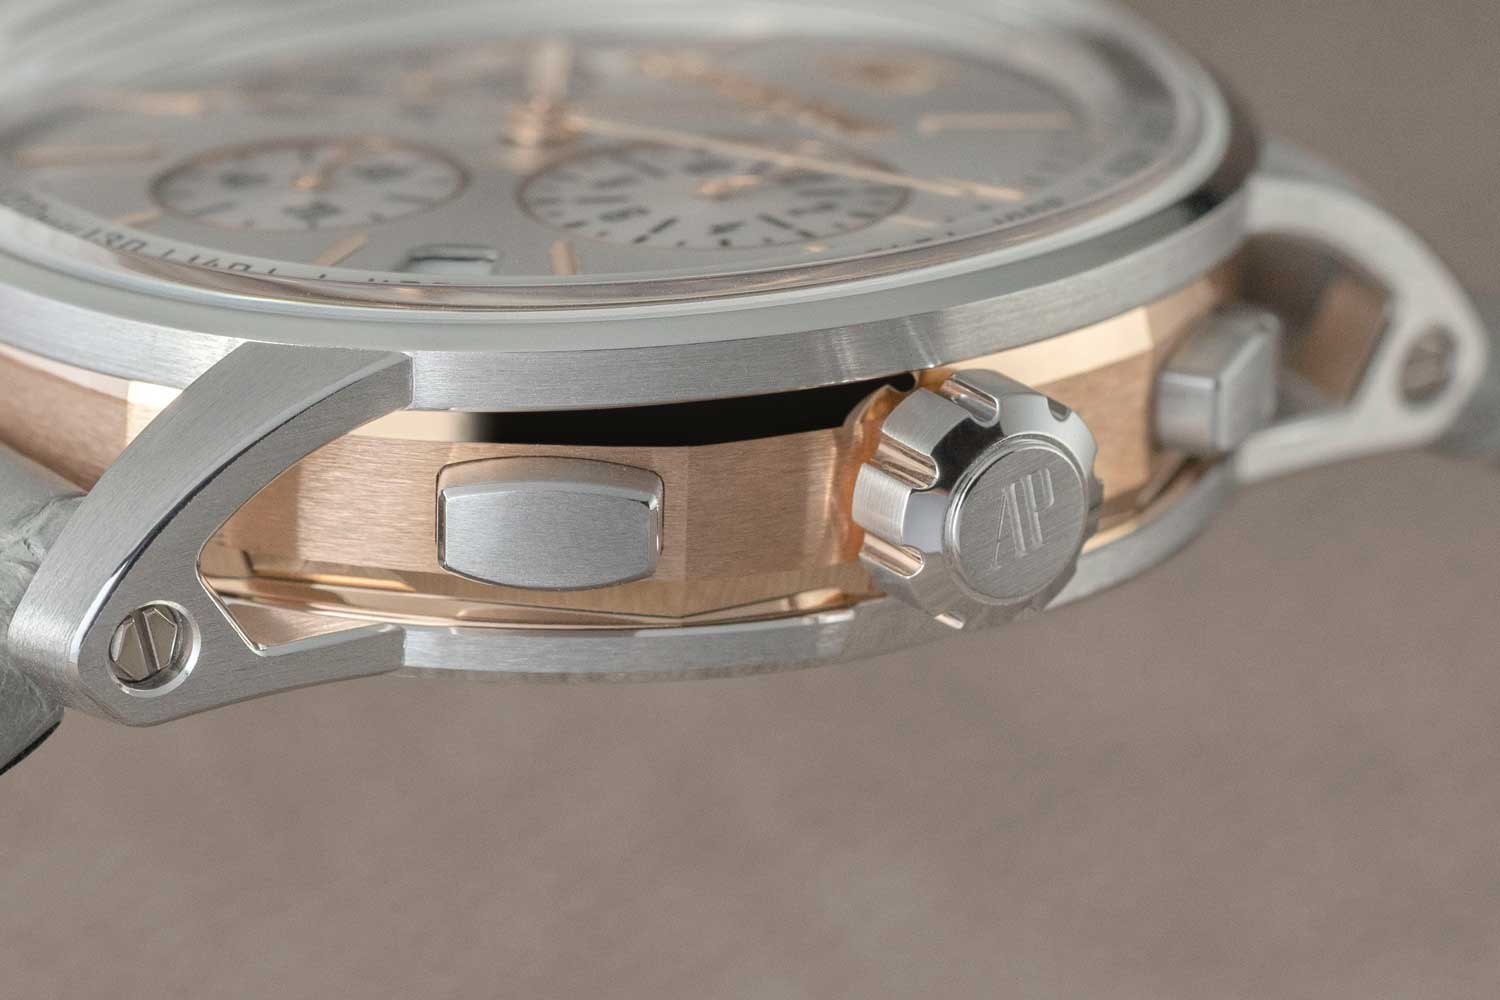 The octagonal caseband on Code 11.59 by Audemars Piguet timepieces is about the height of the complete case of the original 5204 Royal Oak and finished with a fine brushing, its edges are beveled and poslished (©Revolution)